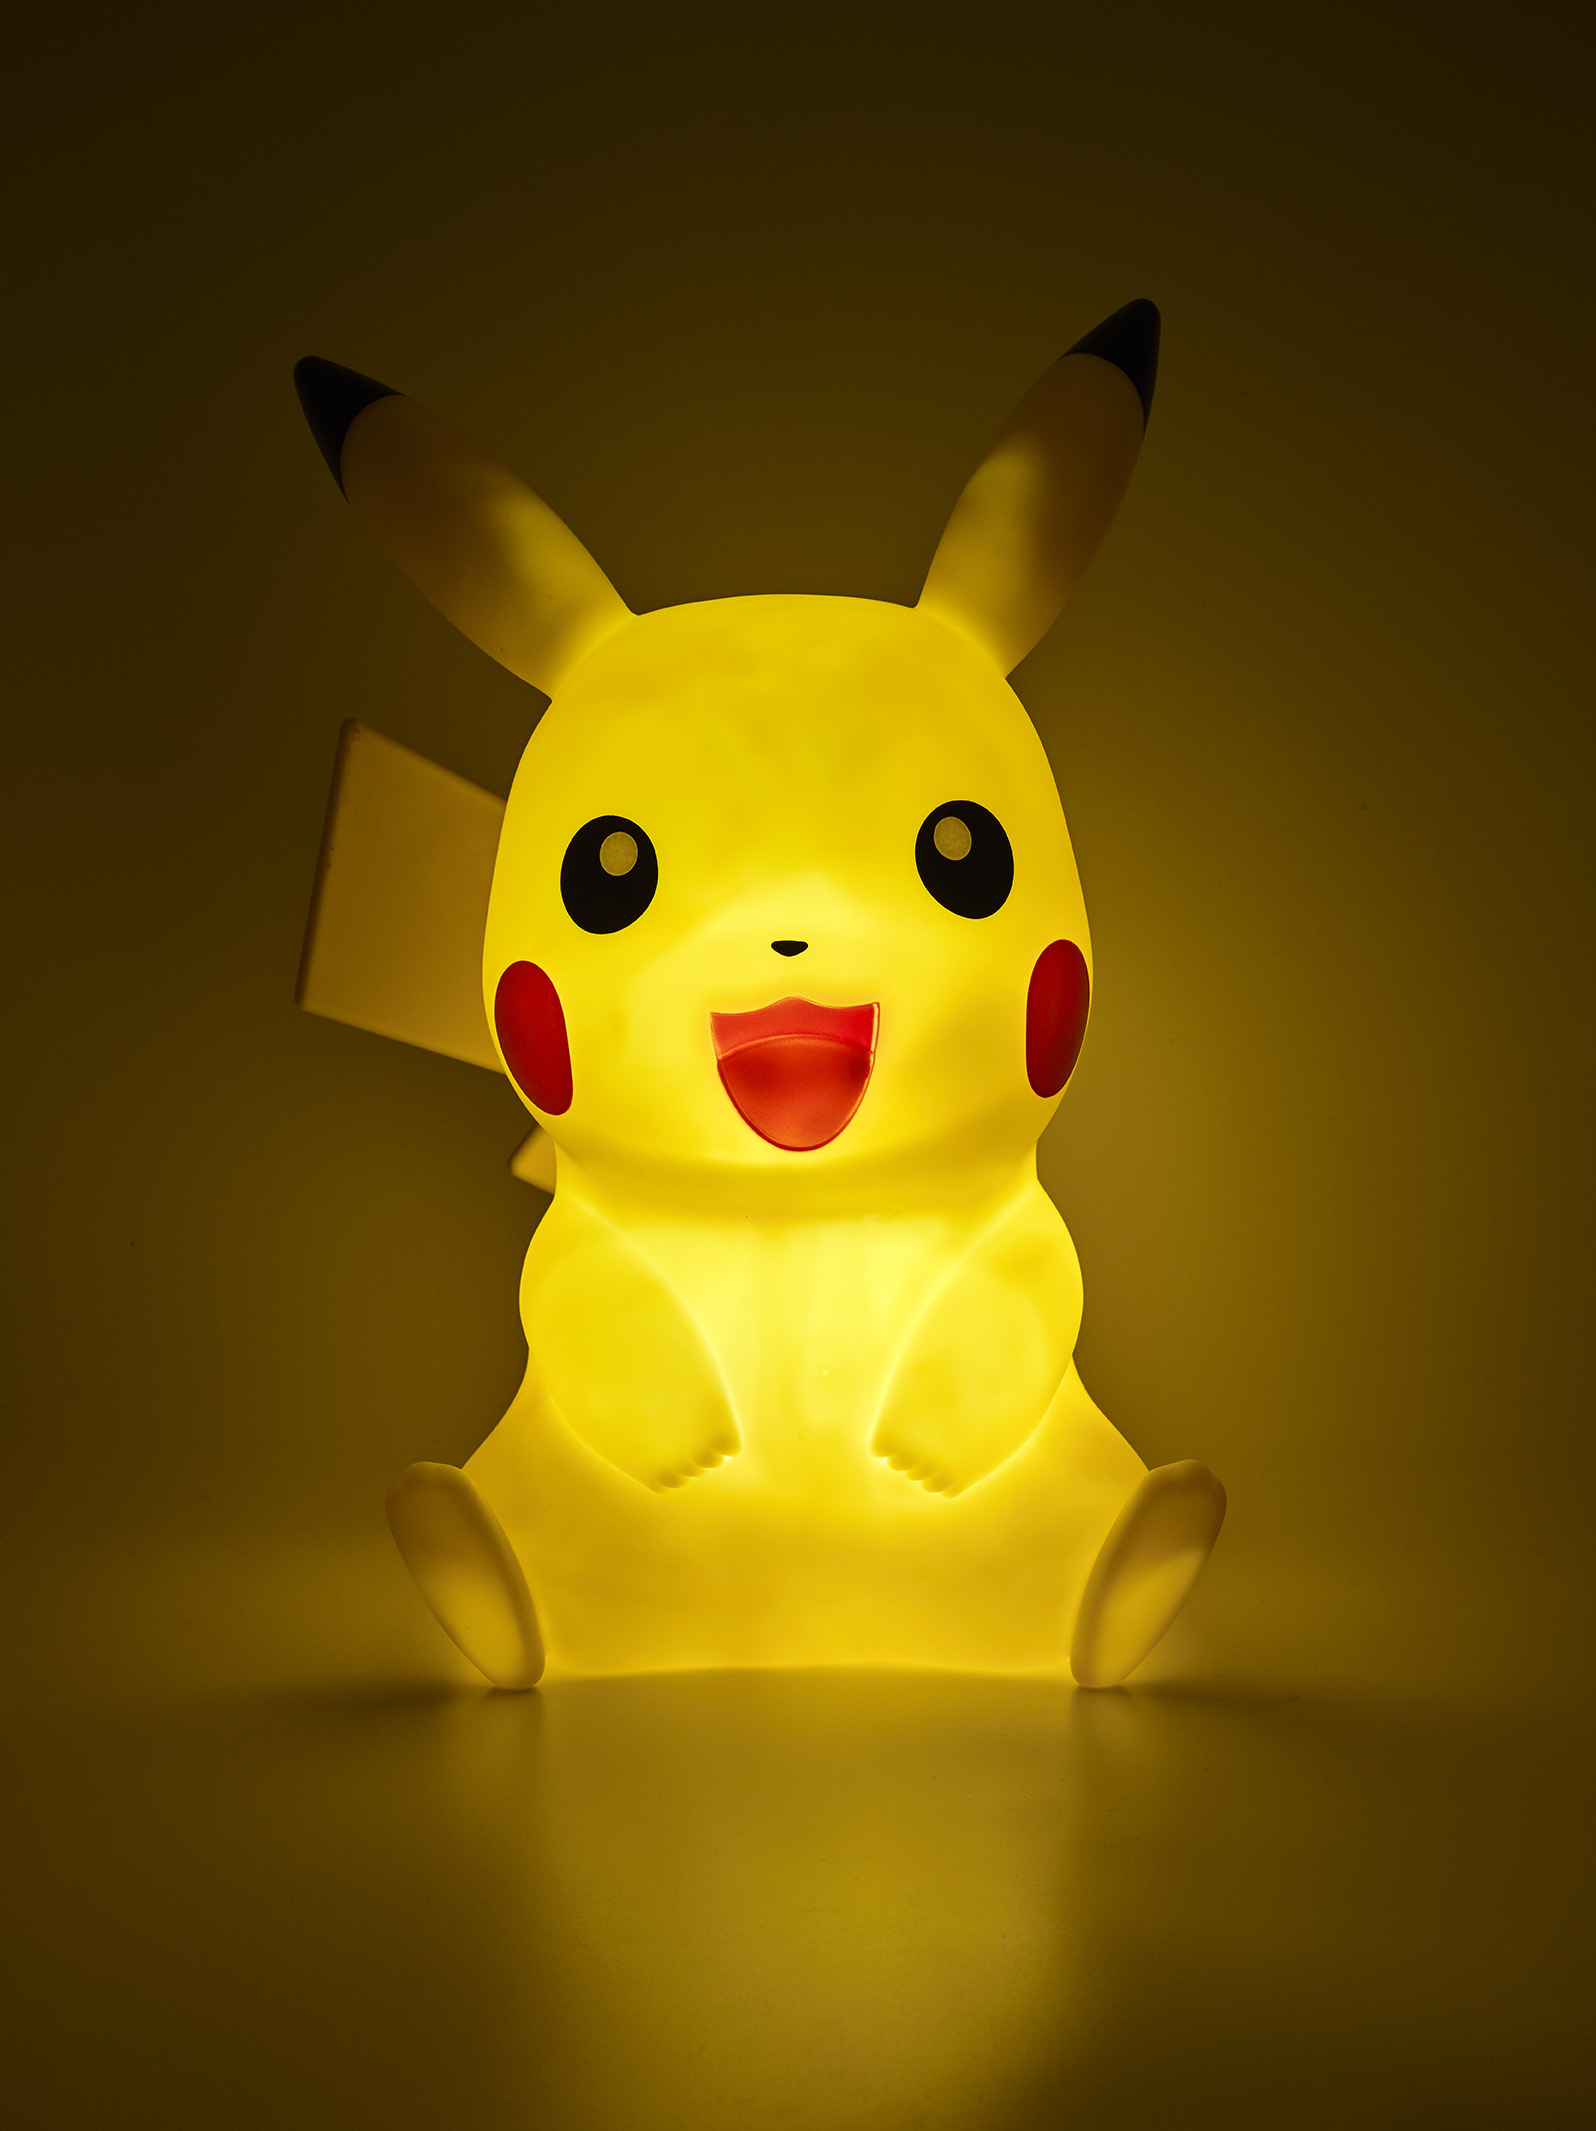 Pokémon Led Pikachu France 16in Madcow Entertainment Lamp E29IWHD